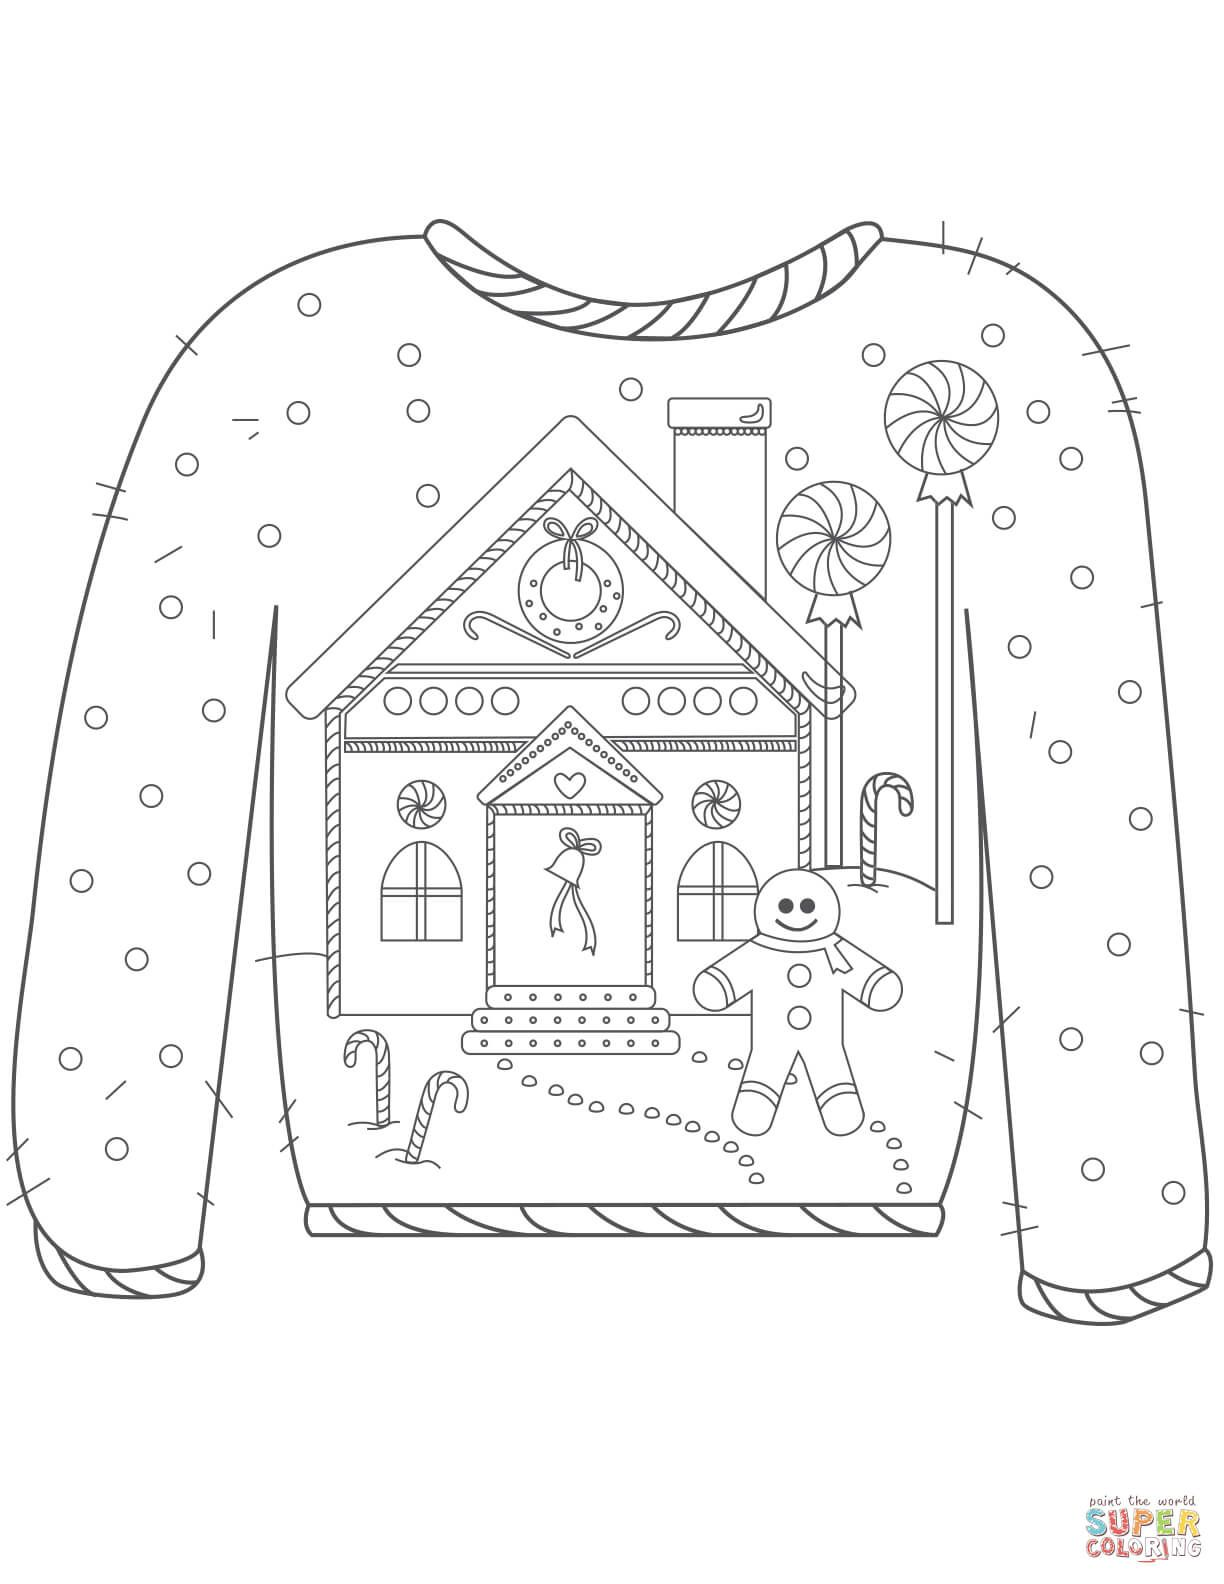 Christmas Ugly Sweater With Gingerbread Man Motif Coloring Page From Christmas Sweaters Category